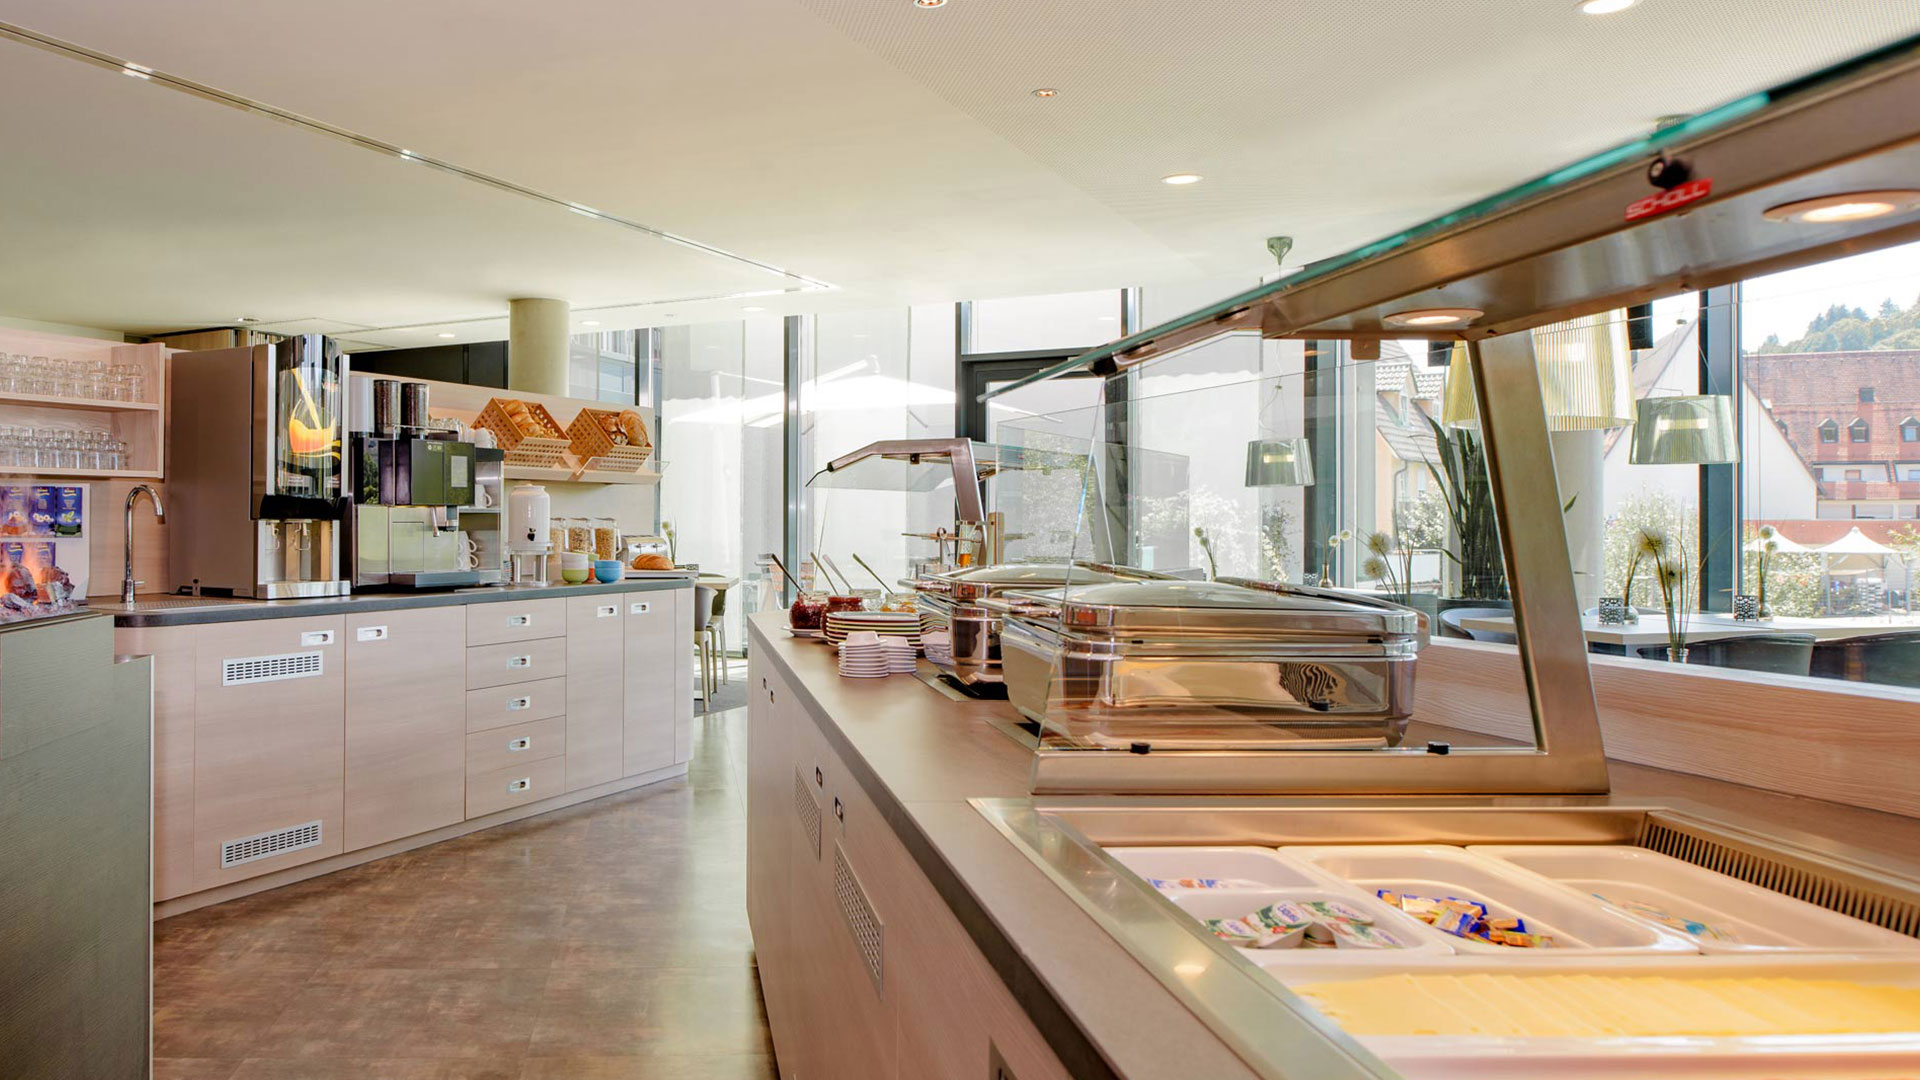 Photo of the breakfast area - 02 - ibis Styles Nagold-Schwarzwald